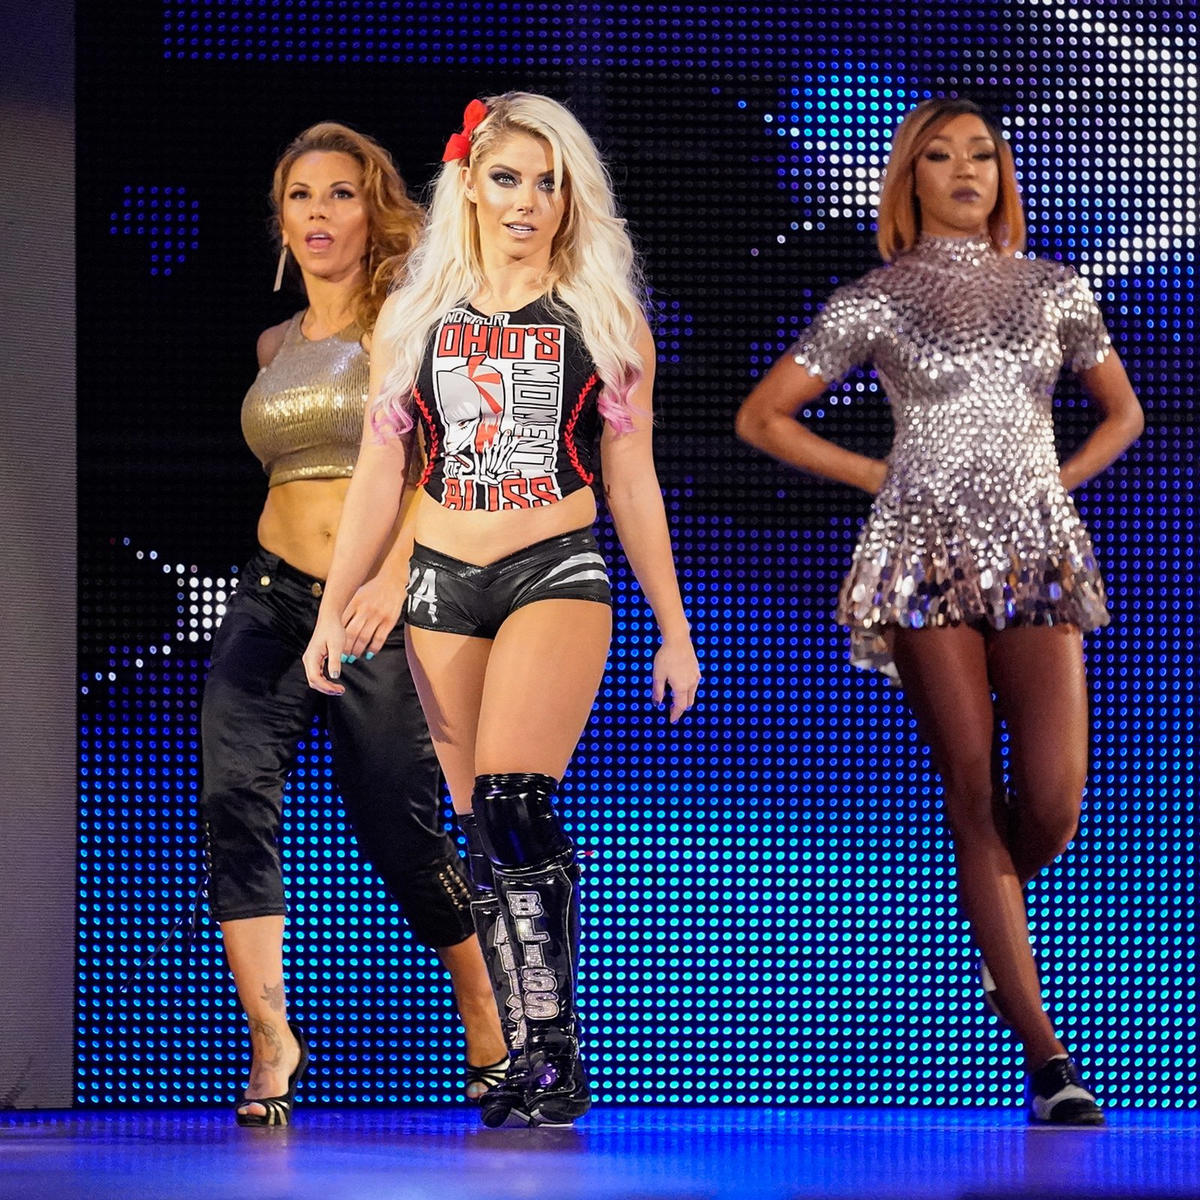 Alexa Bliss, Mickie James and Alicia Fox hit the scene.